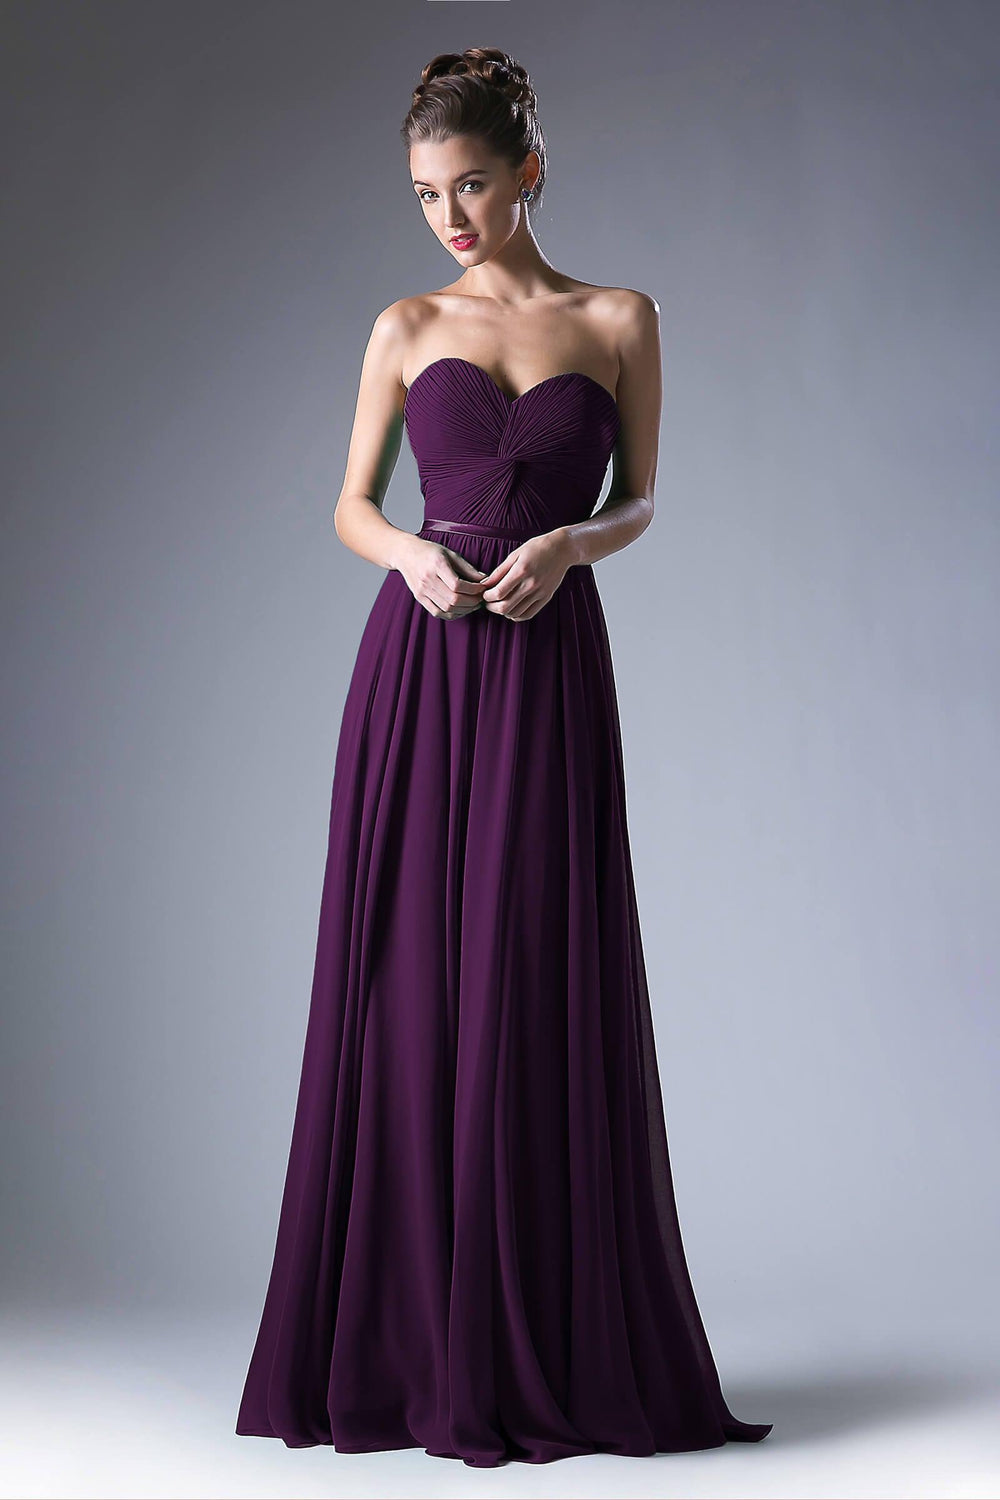 Strapless Chiffon Empire Waist Prom Dress - The Dress Outlet Eggplant